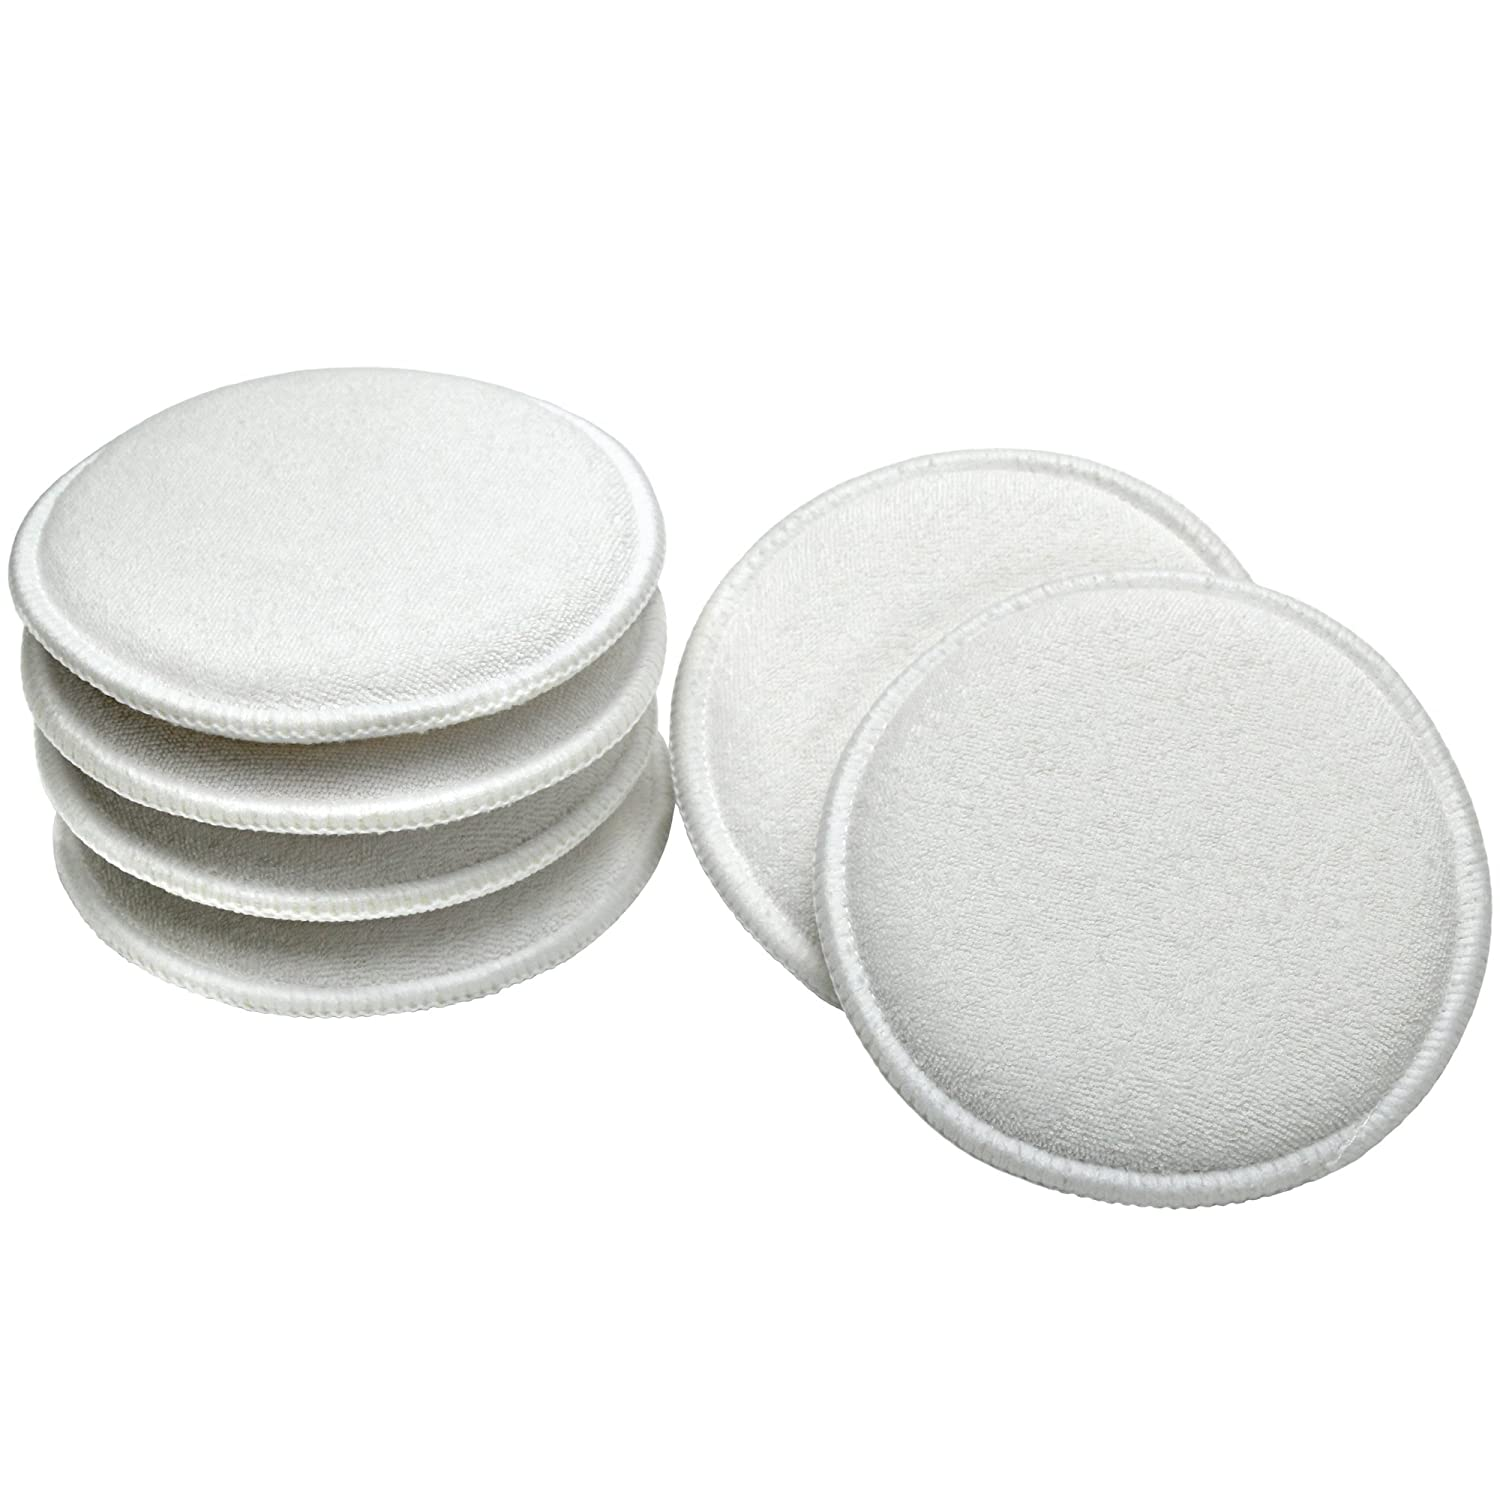 Viking Cotton Terry Wax Applicator Pads - 6 Pack 986016